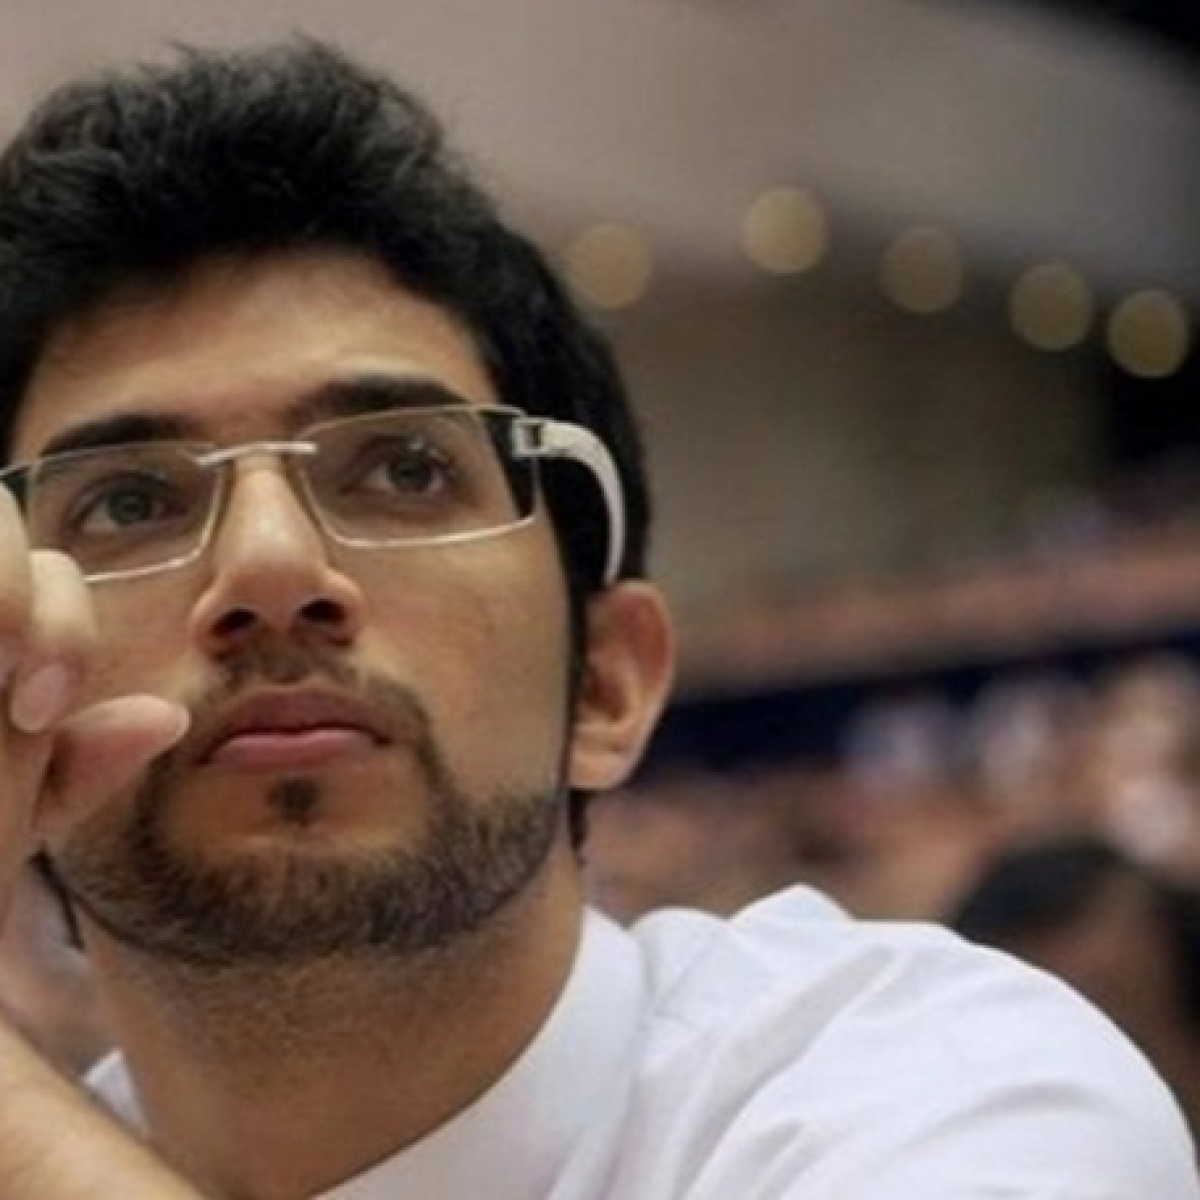 Composer, lyricist, ballad writer: Did you know Aaditya Thackeray is also a musician?